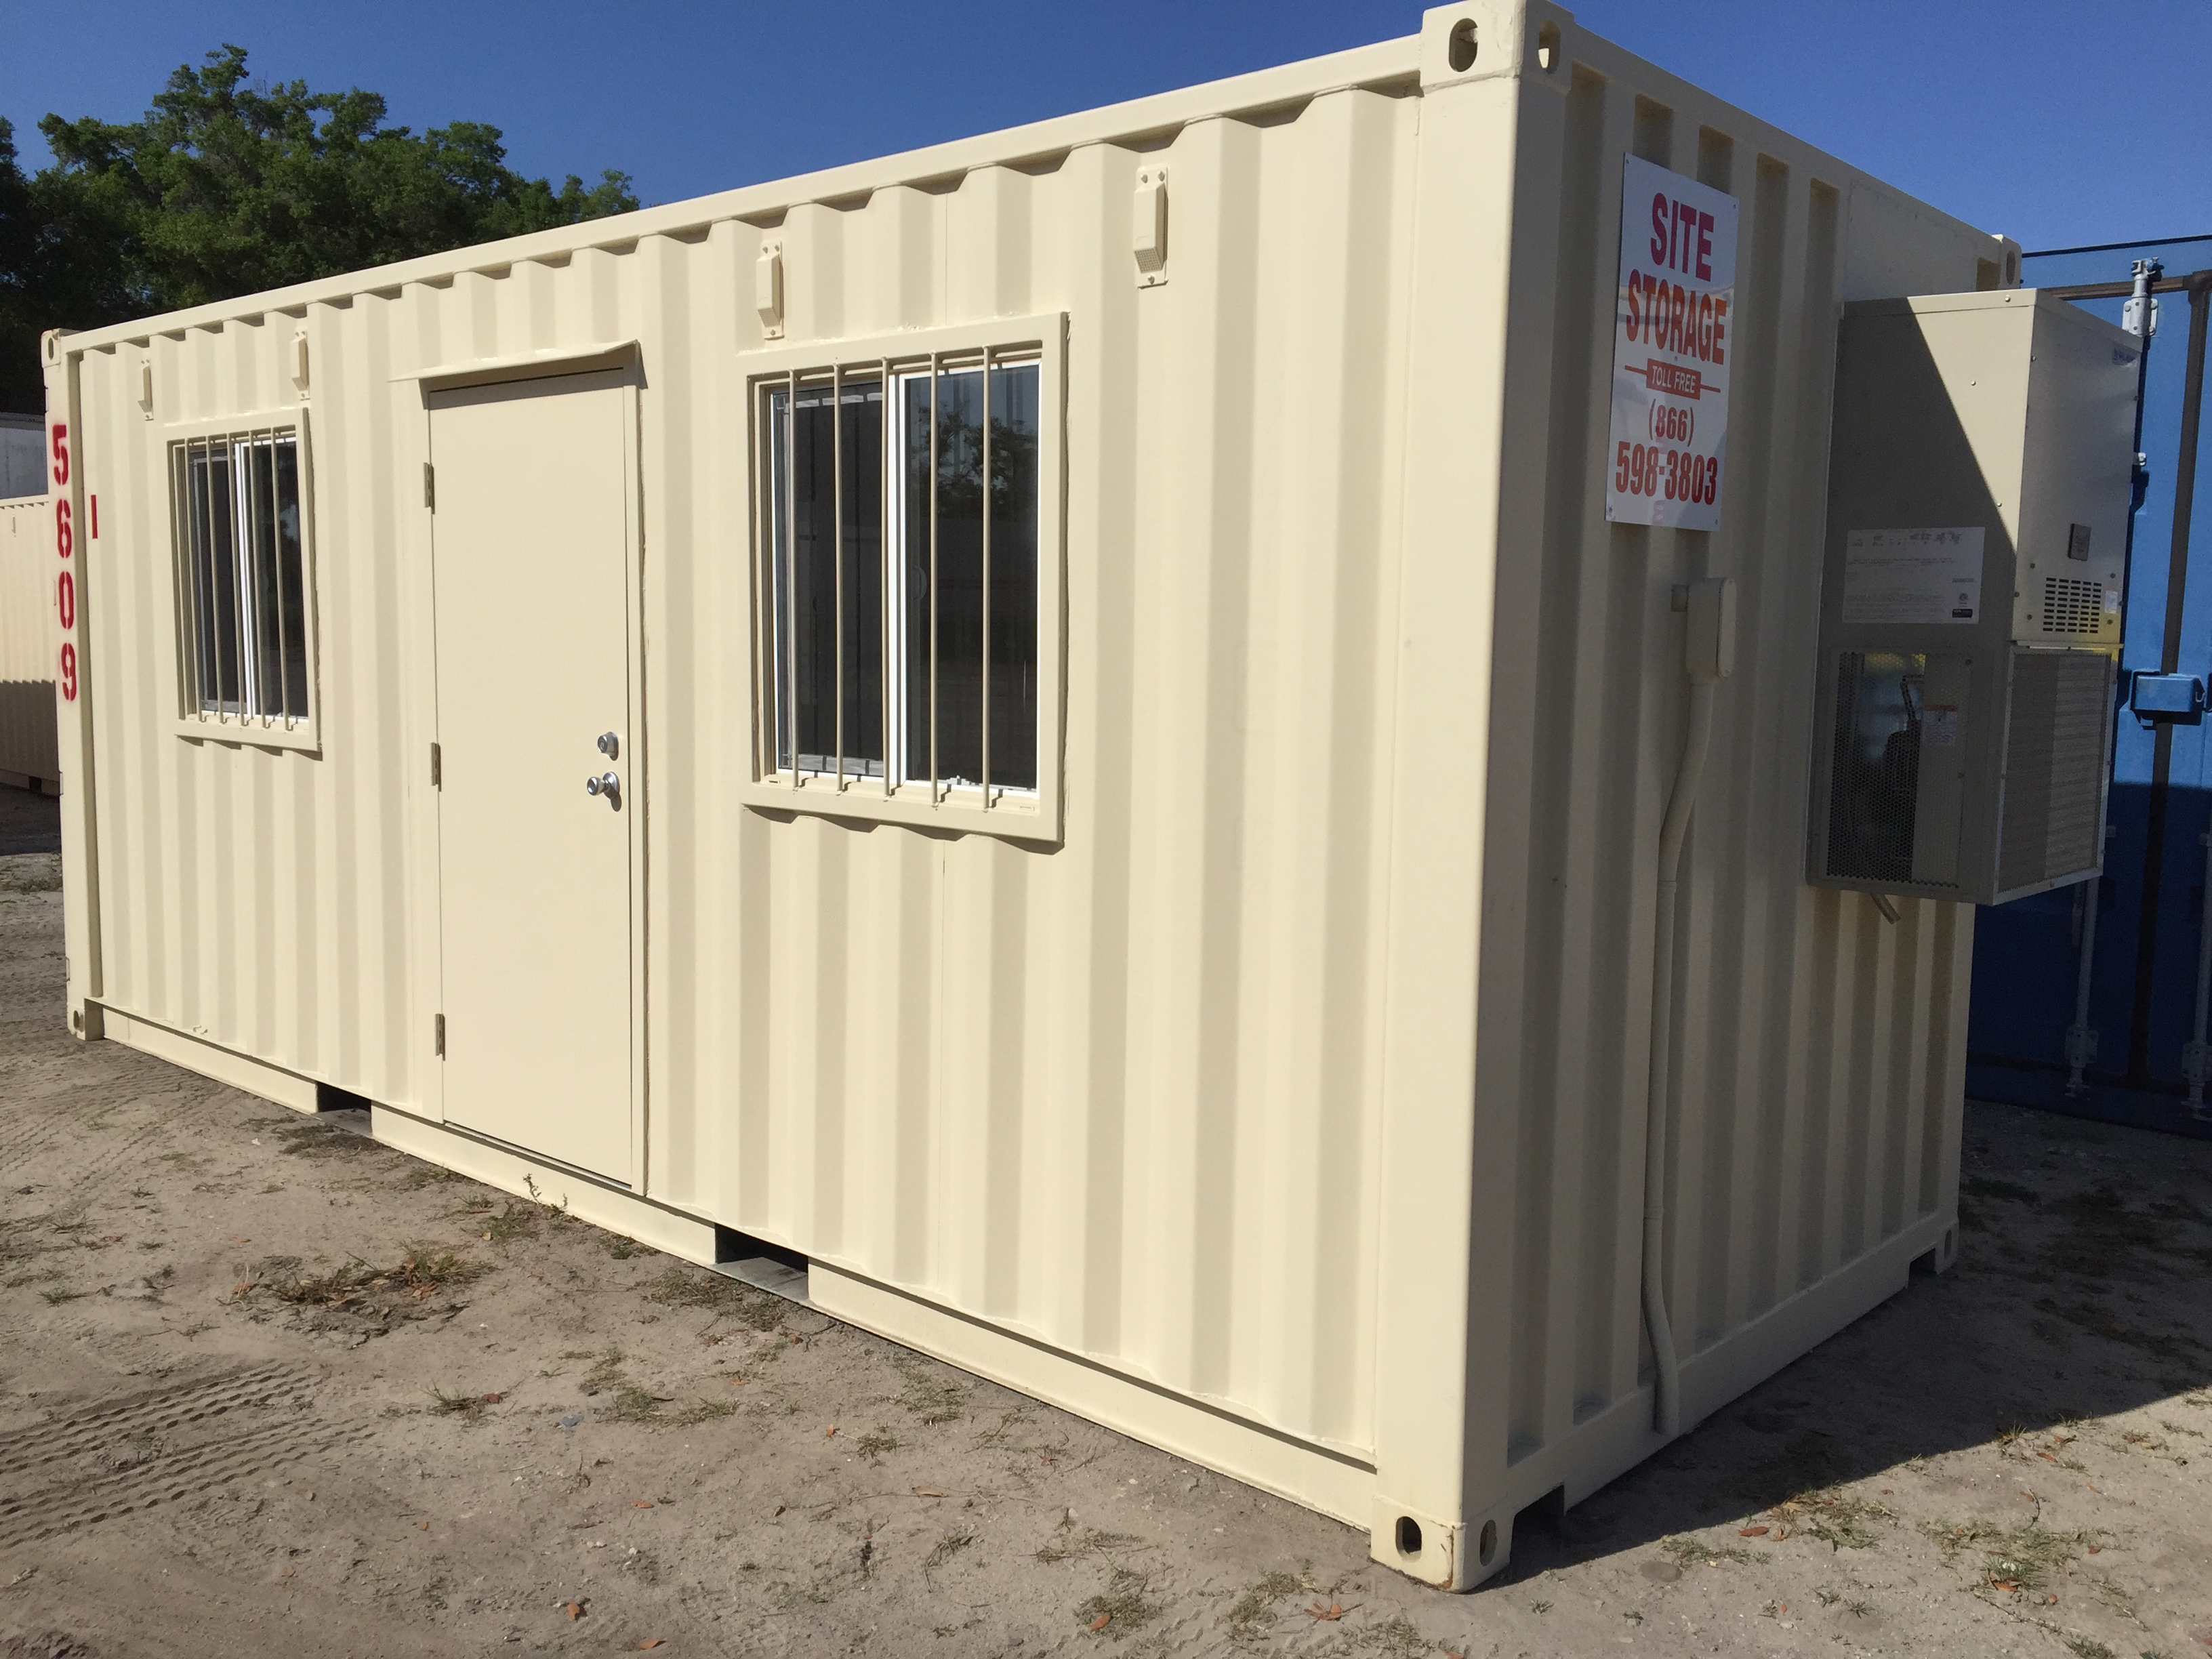 Site Storage Storage Containers For Rent In Orlando